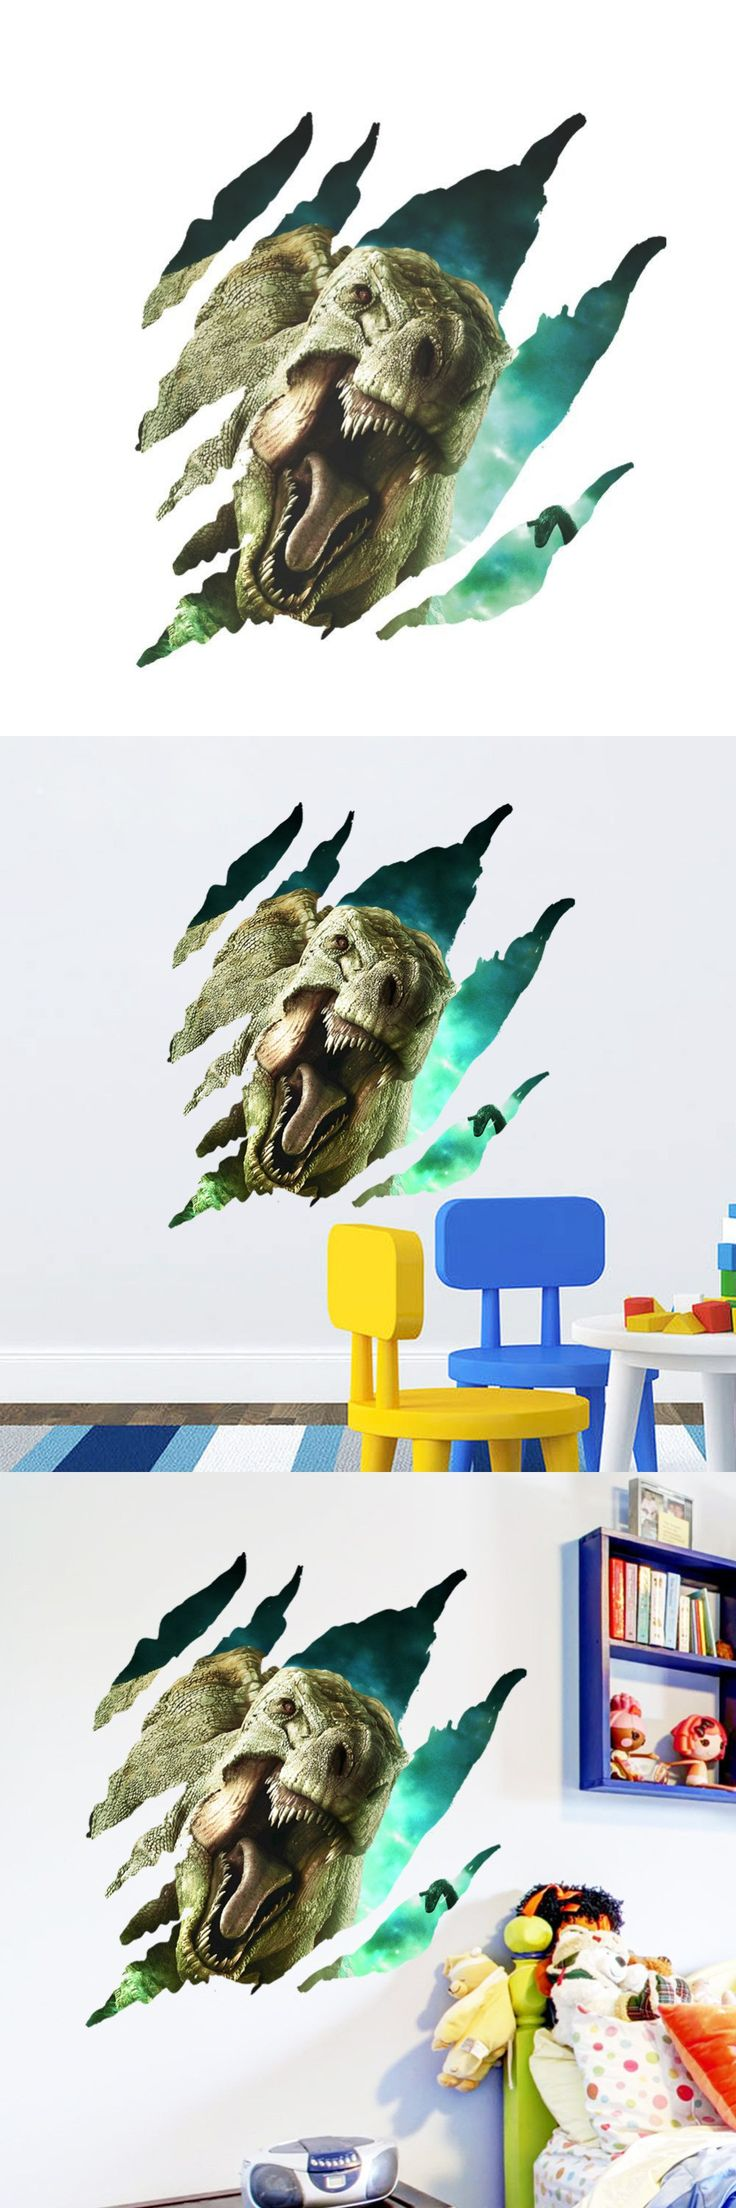 best 25 dinosaur wall stickers ideas on pinterest dinosaur wall 3d jurassic park dinosaur wall sticker kids room bedroom backdrop wall stickers home decor sticker